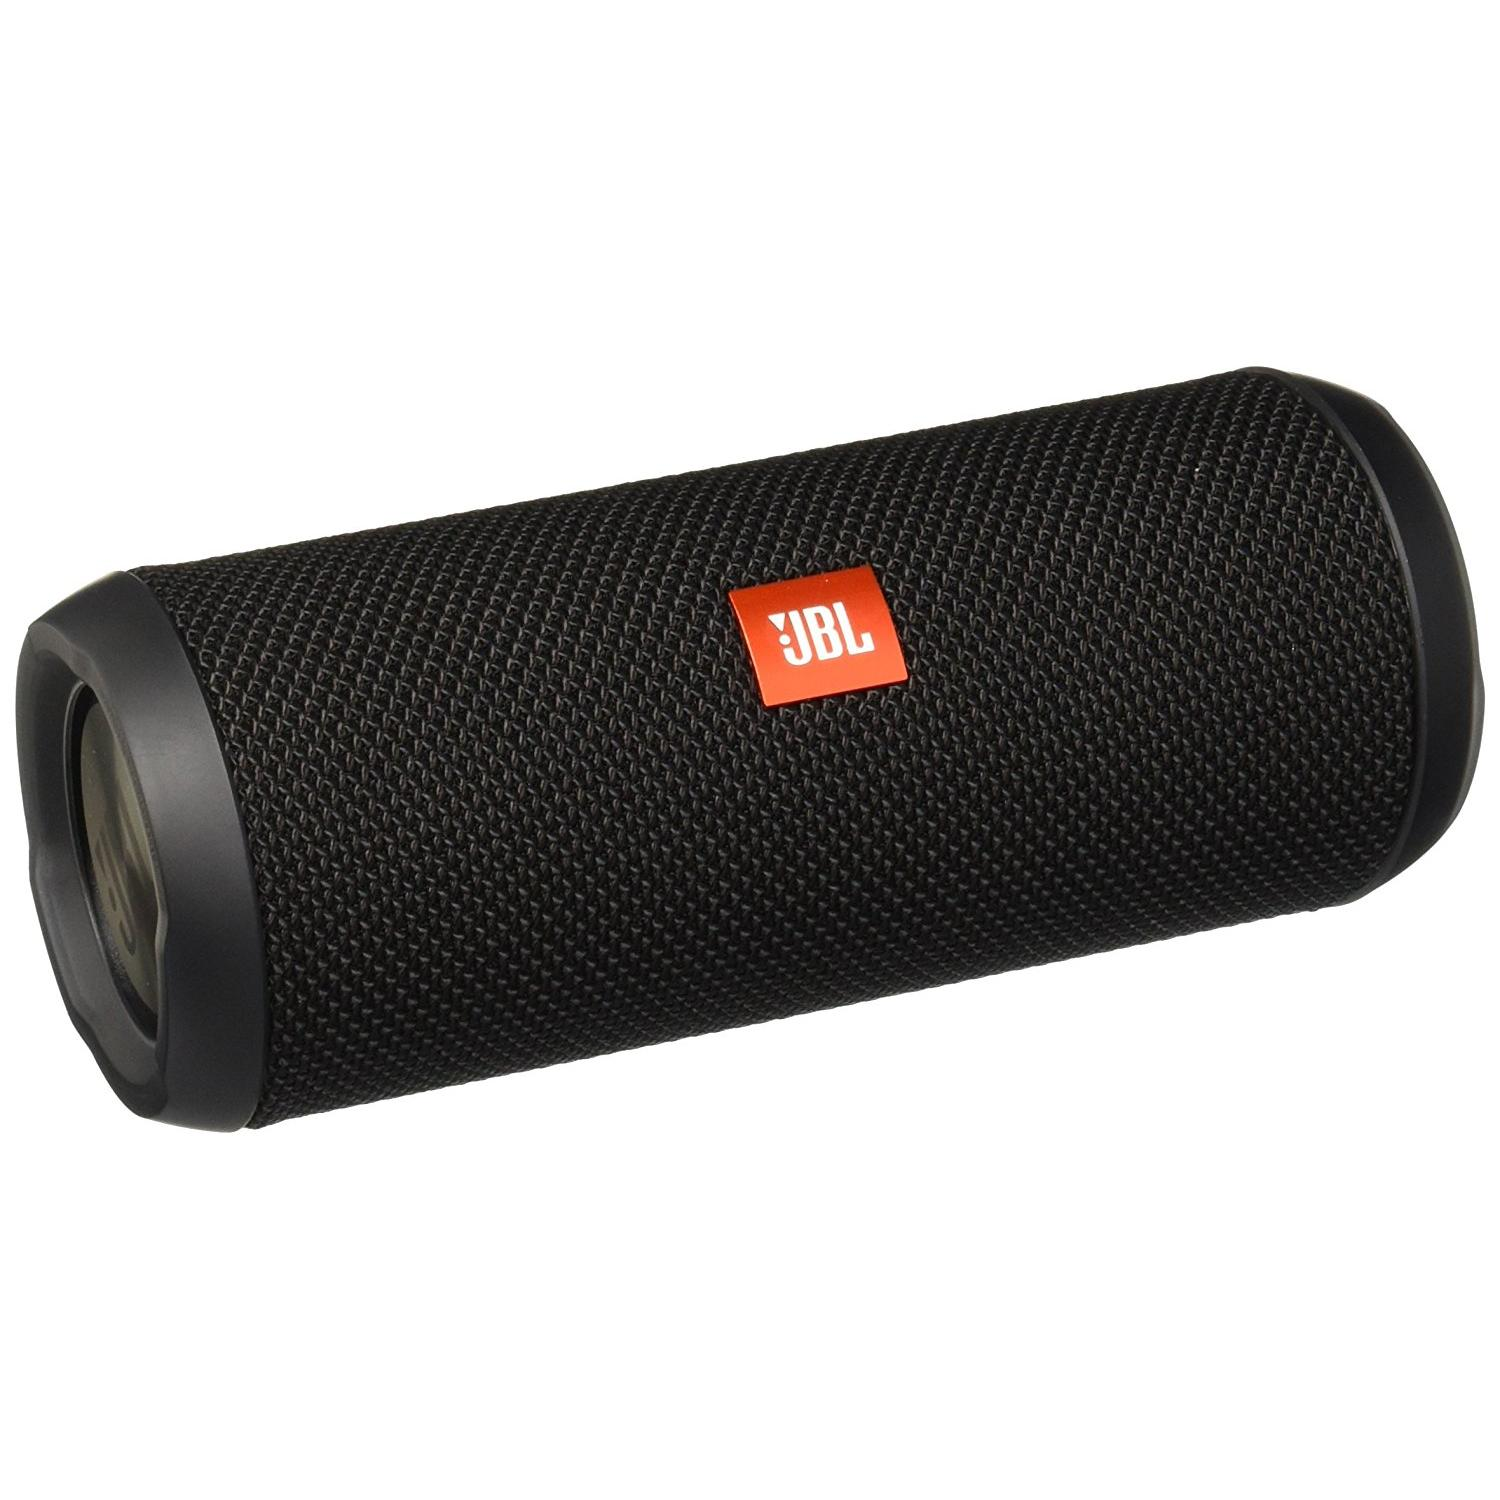 Jbl Bluetooth Speakers : jbl flip 3 splashproof portable bluetooth speaker reagan wireless wholesale cell phones ~ Hamham.info Haus und Dekorationen